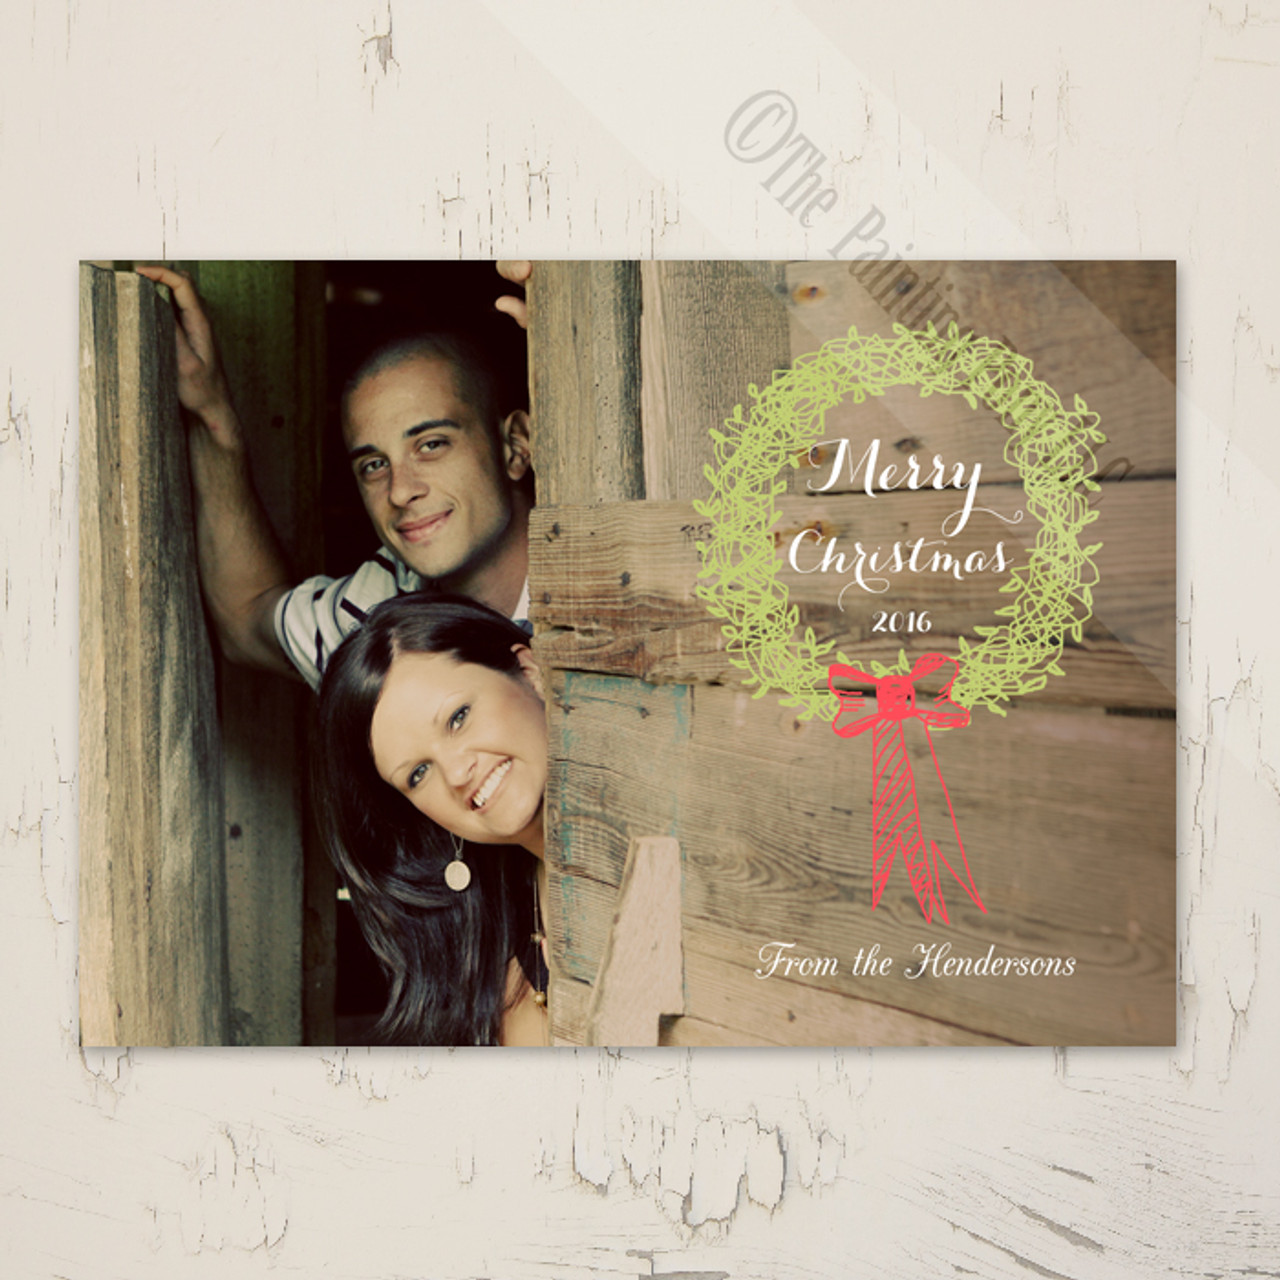 Whimsical Holiday Wreath Photo Template Greeting Cards (10 pk) - The ...